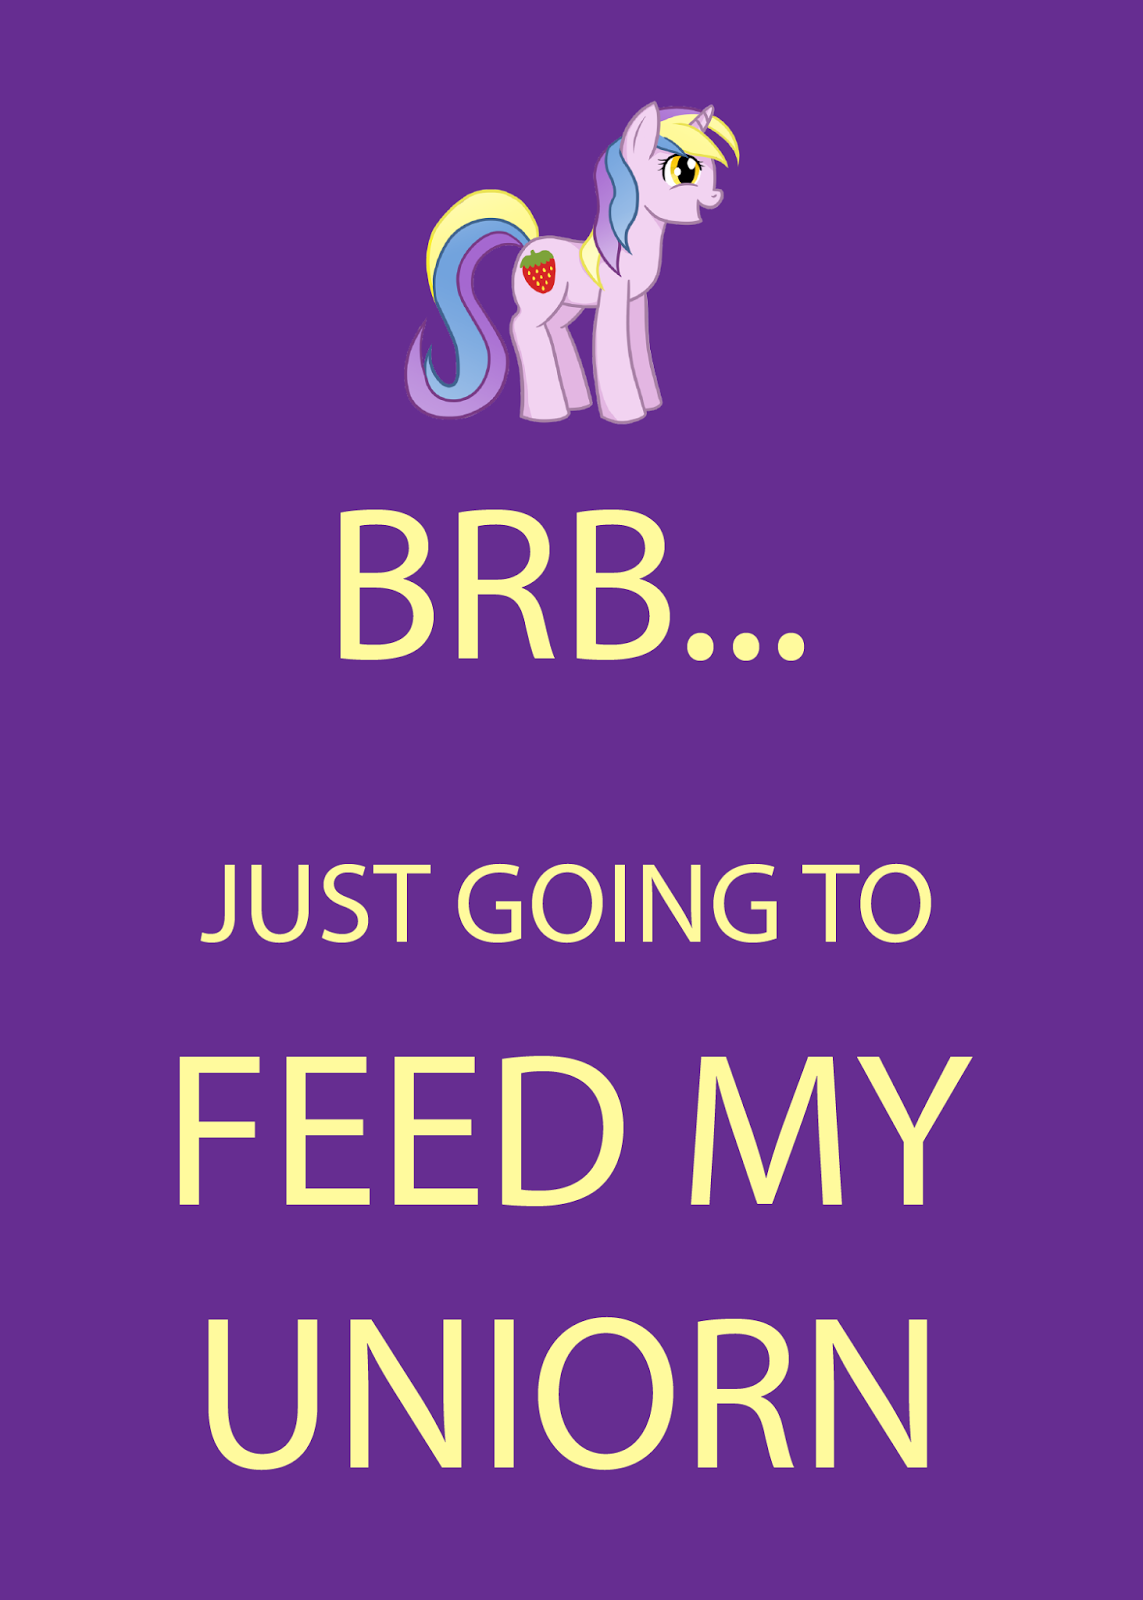 BRB... feeding my unicorn